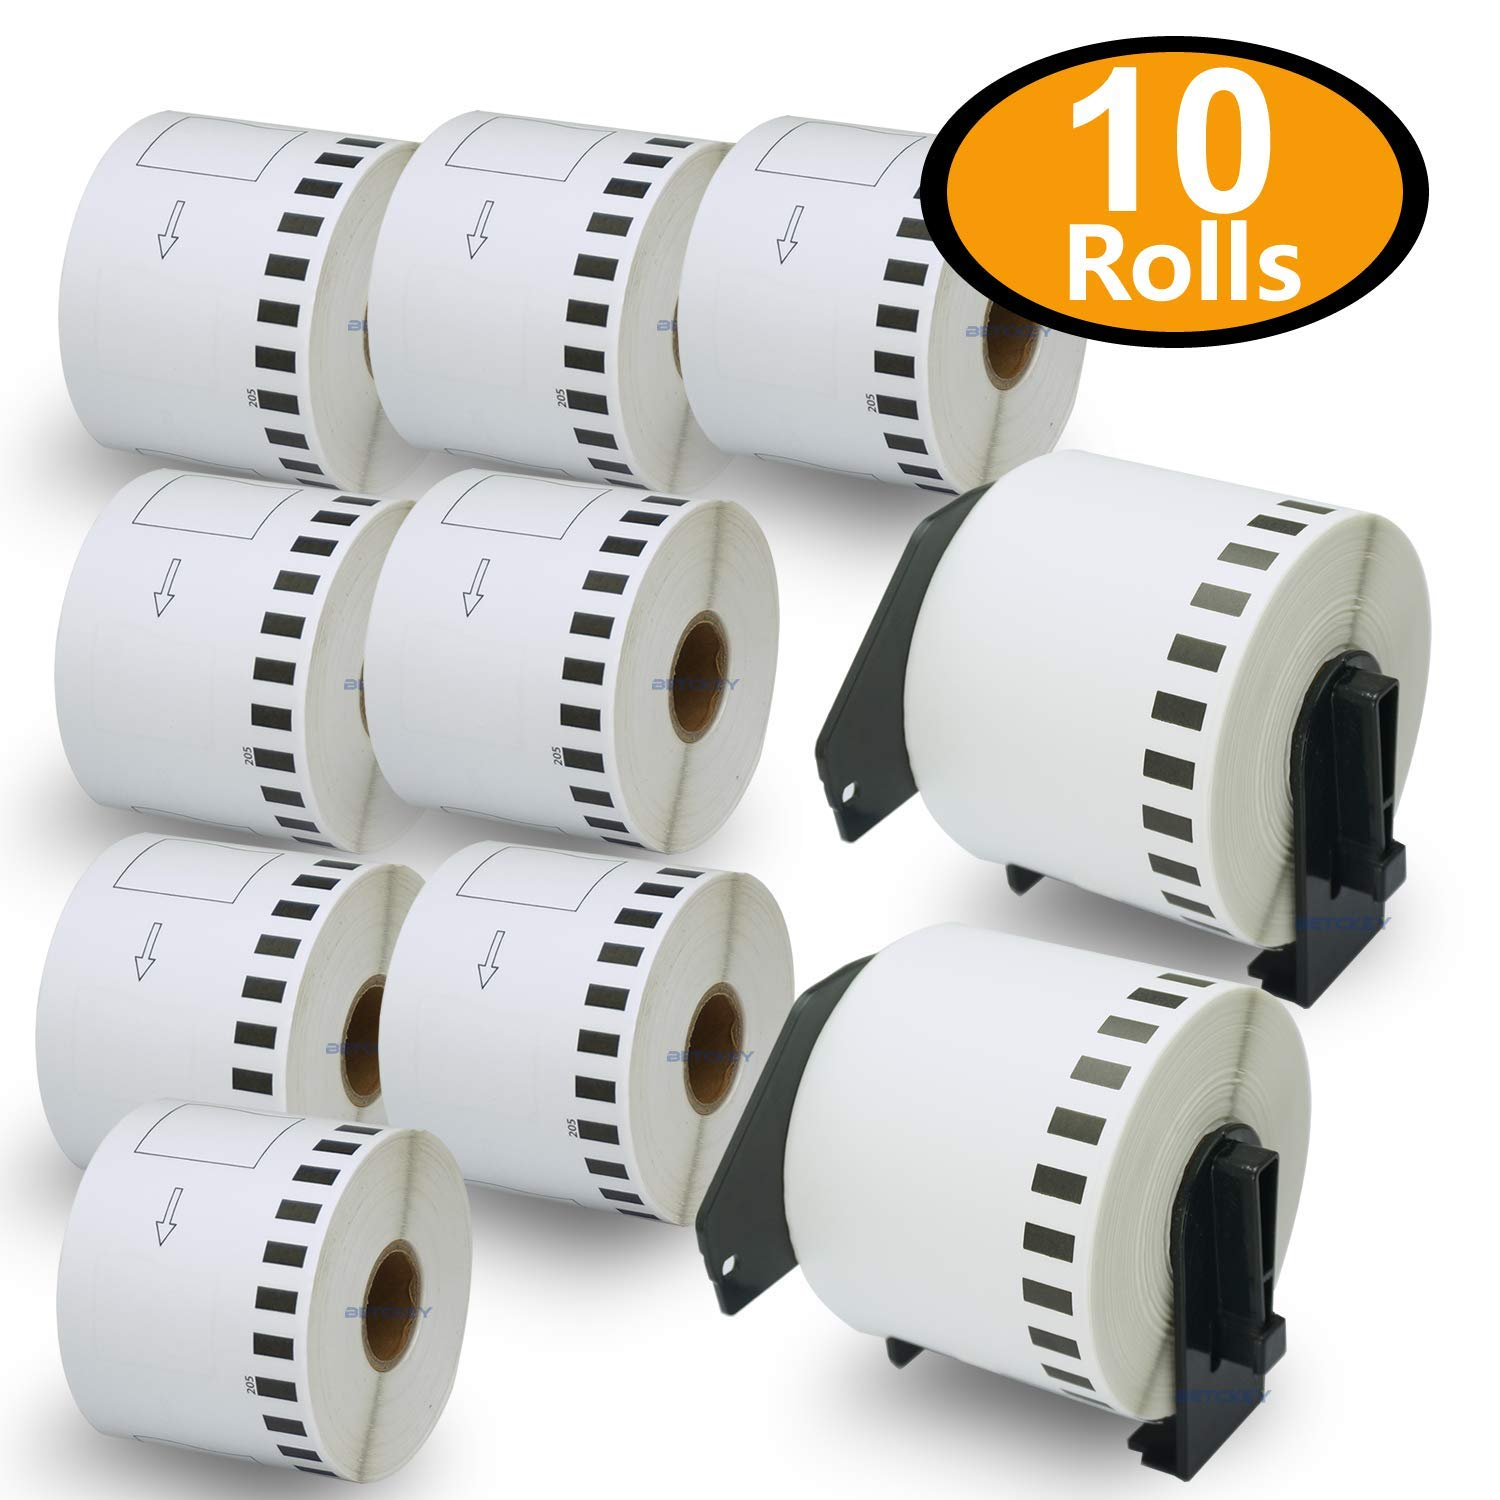 QL580 QL570 QL560 10x compatibile Brother DK22205 Rotolo Etichetta di indirizzo bianca standard per Brother label Printer QL1050 // QL1060 // QL500 QL720 QL710 QL550 QL650 QL700